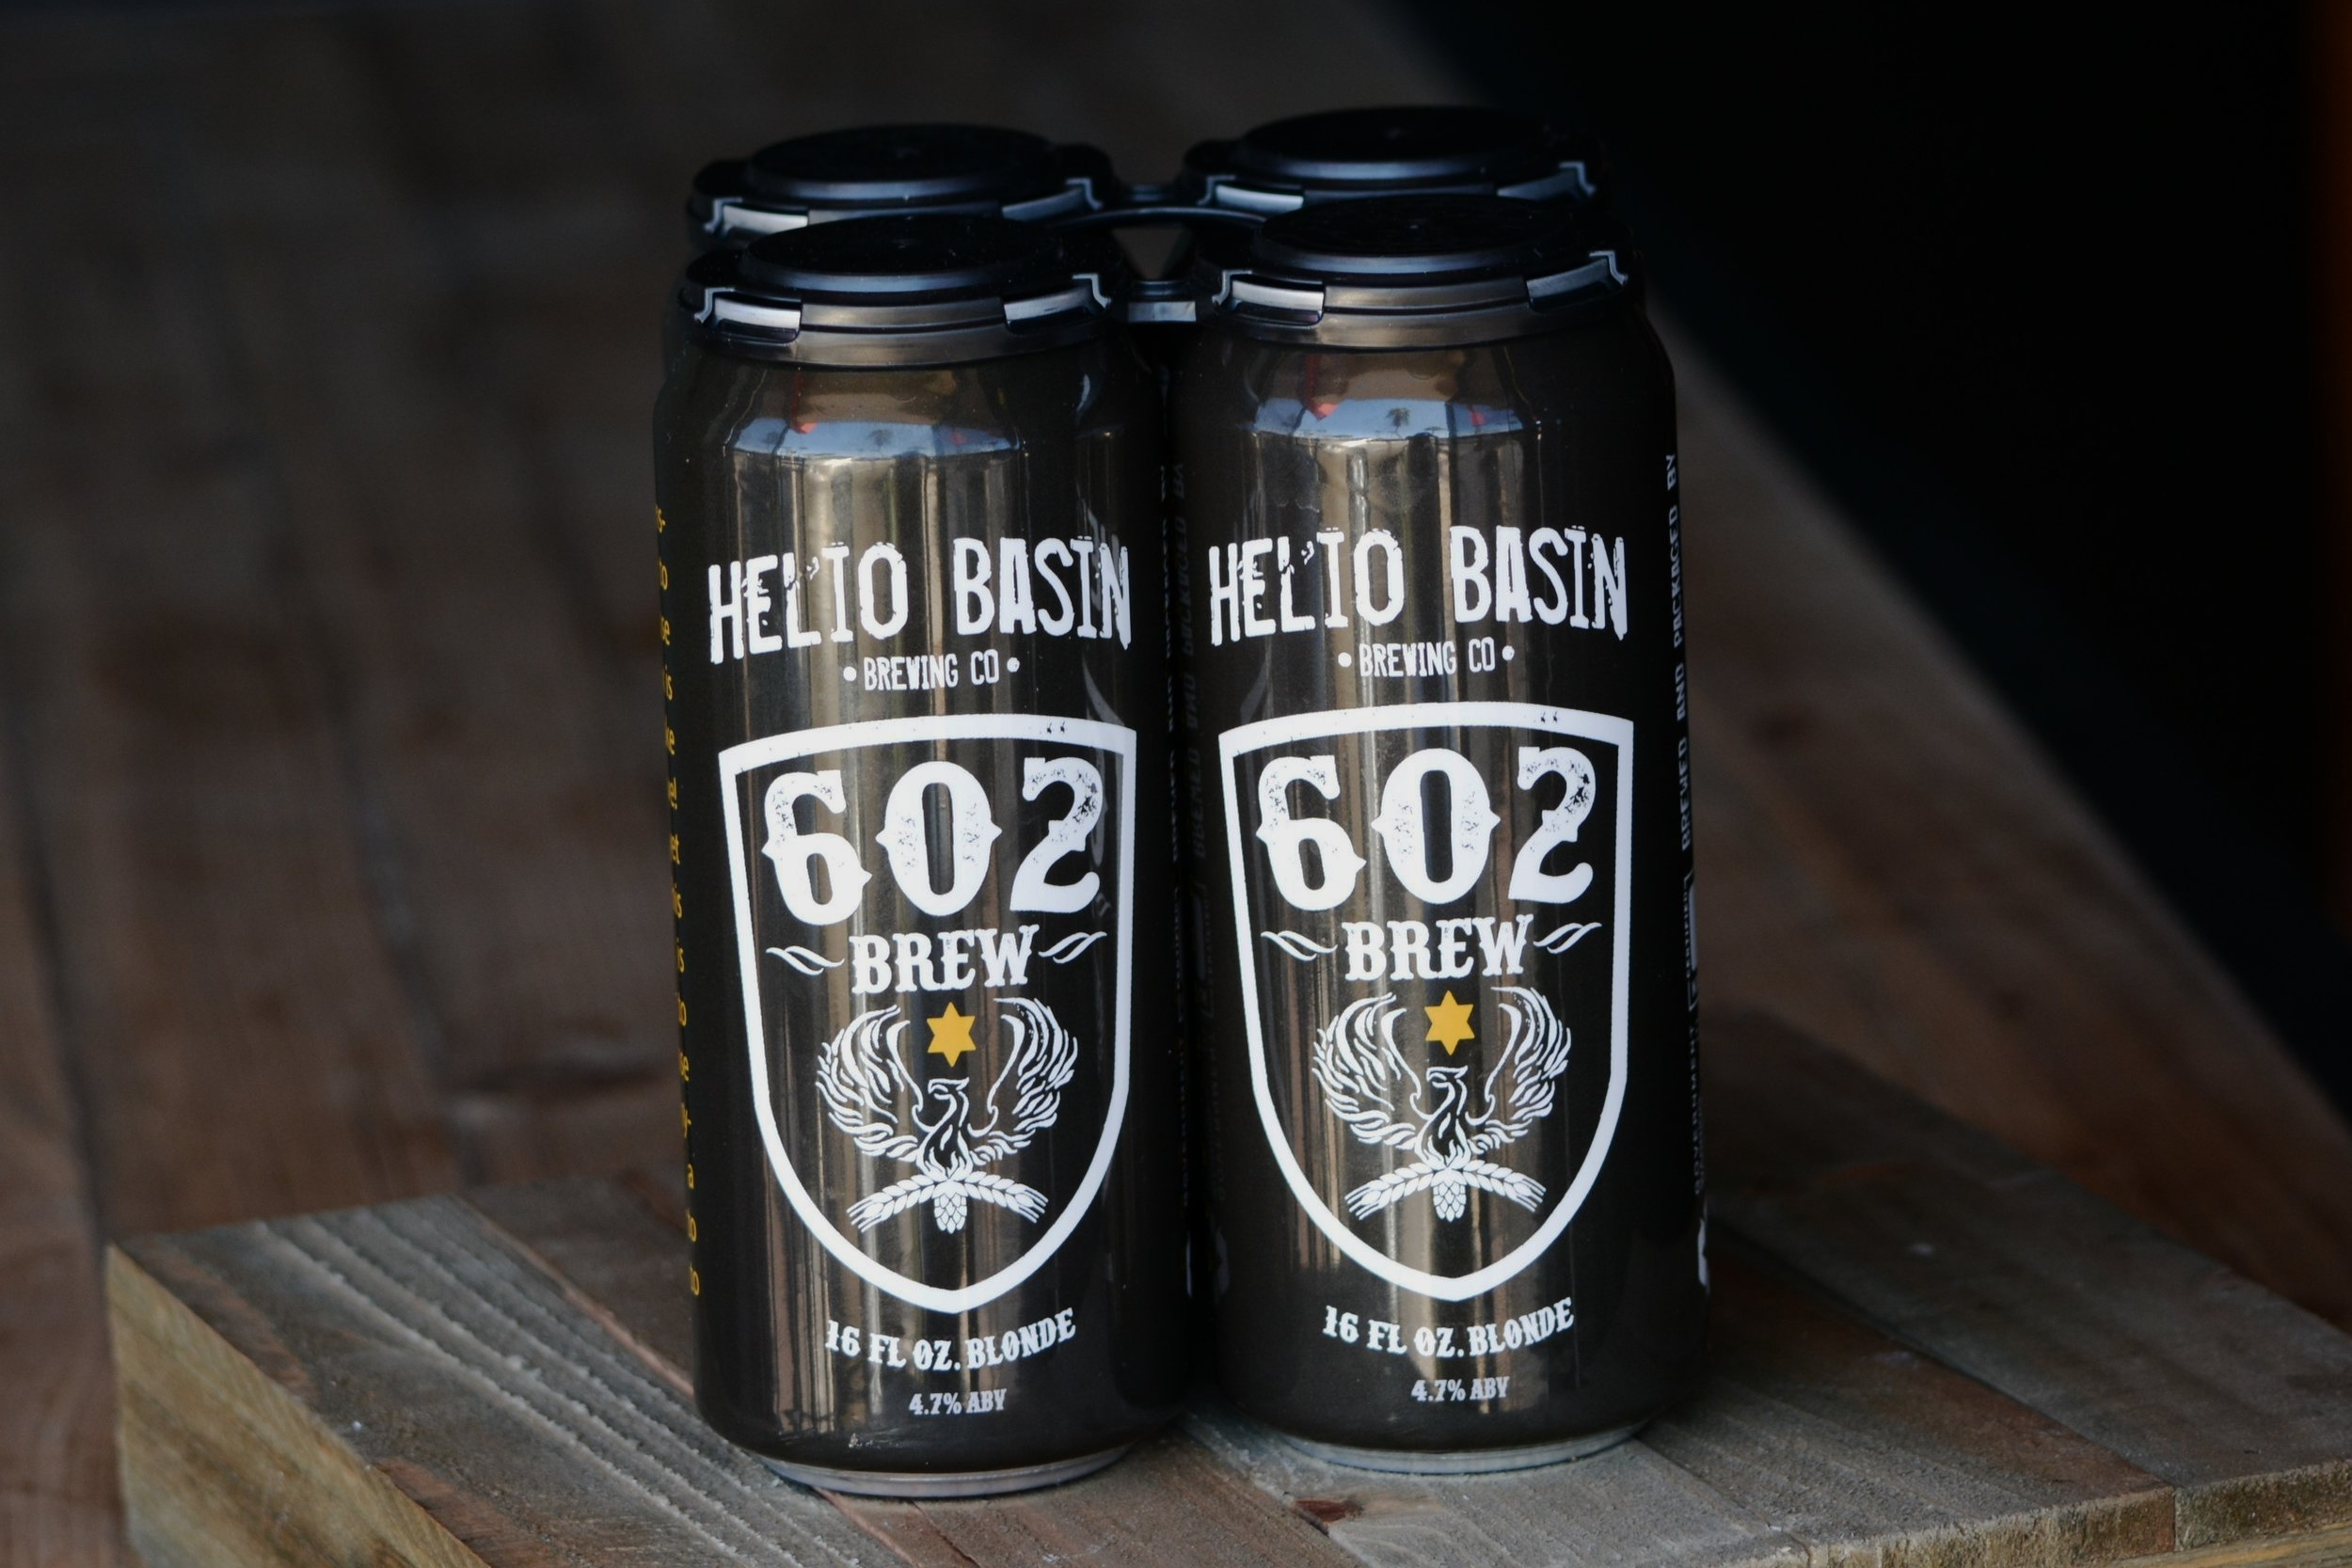 602 Brew - Ranked the #156 best beer in the world by Beer Connoisseur, this beer is a nod to Central Phoenix and those who call it home. This light and clean beer is brewed to quench your thirst on hot summer days.4.7% ABV 18 IBU